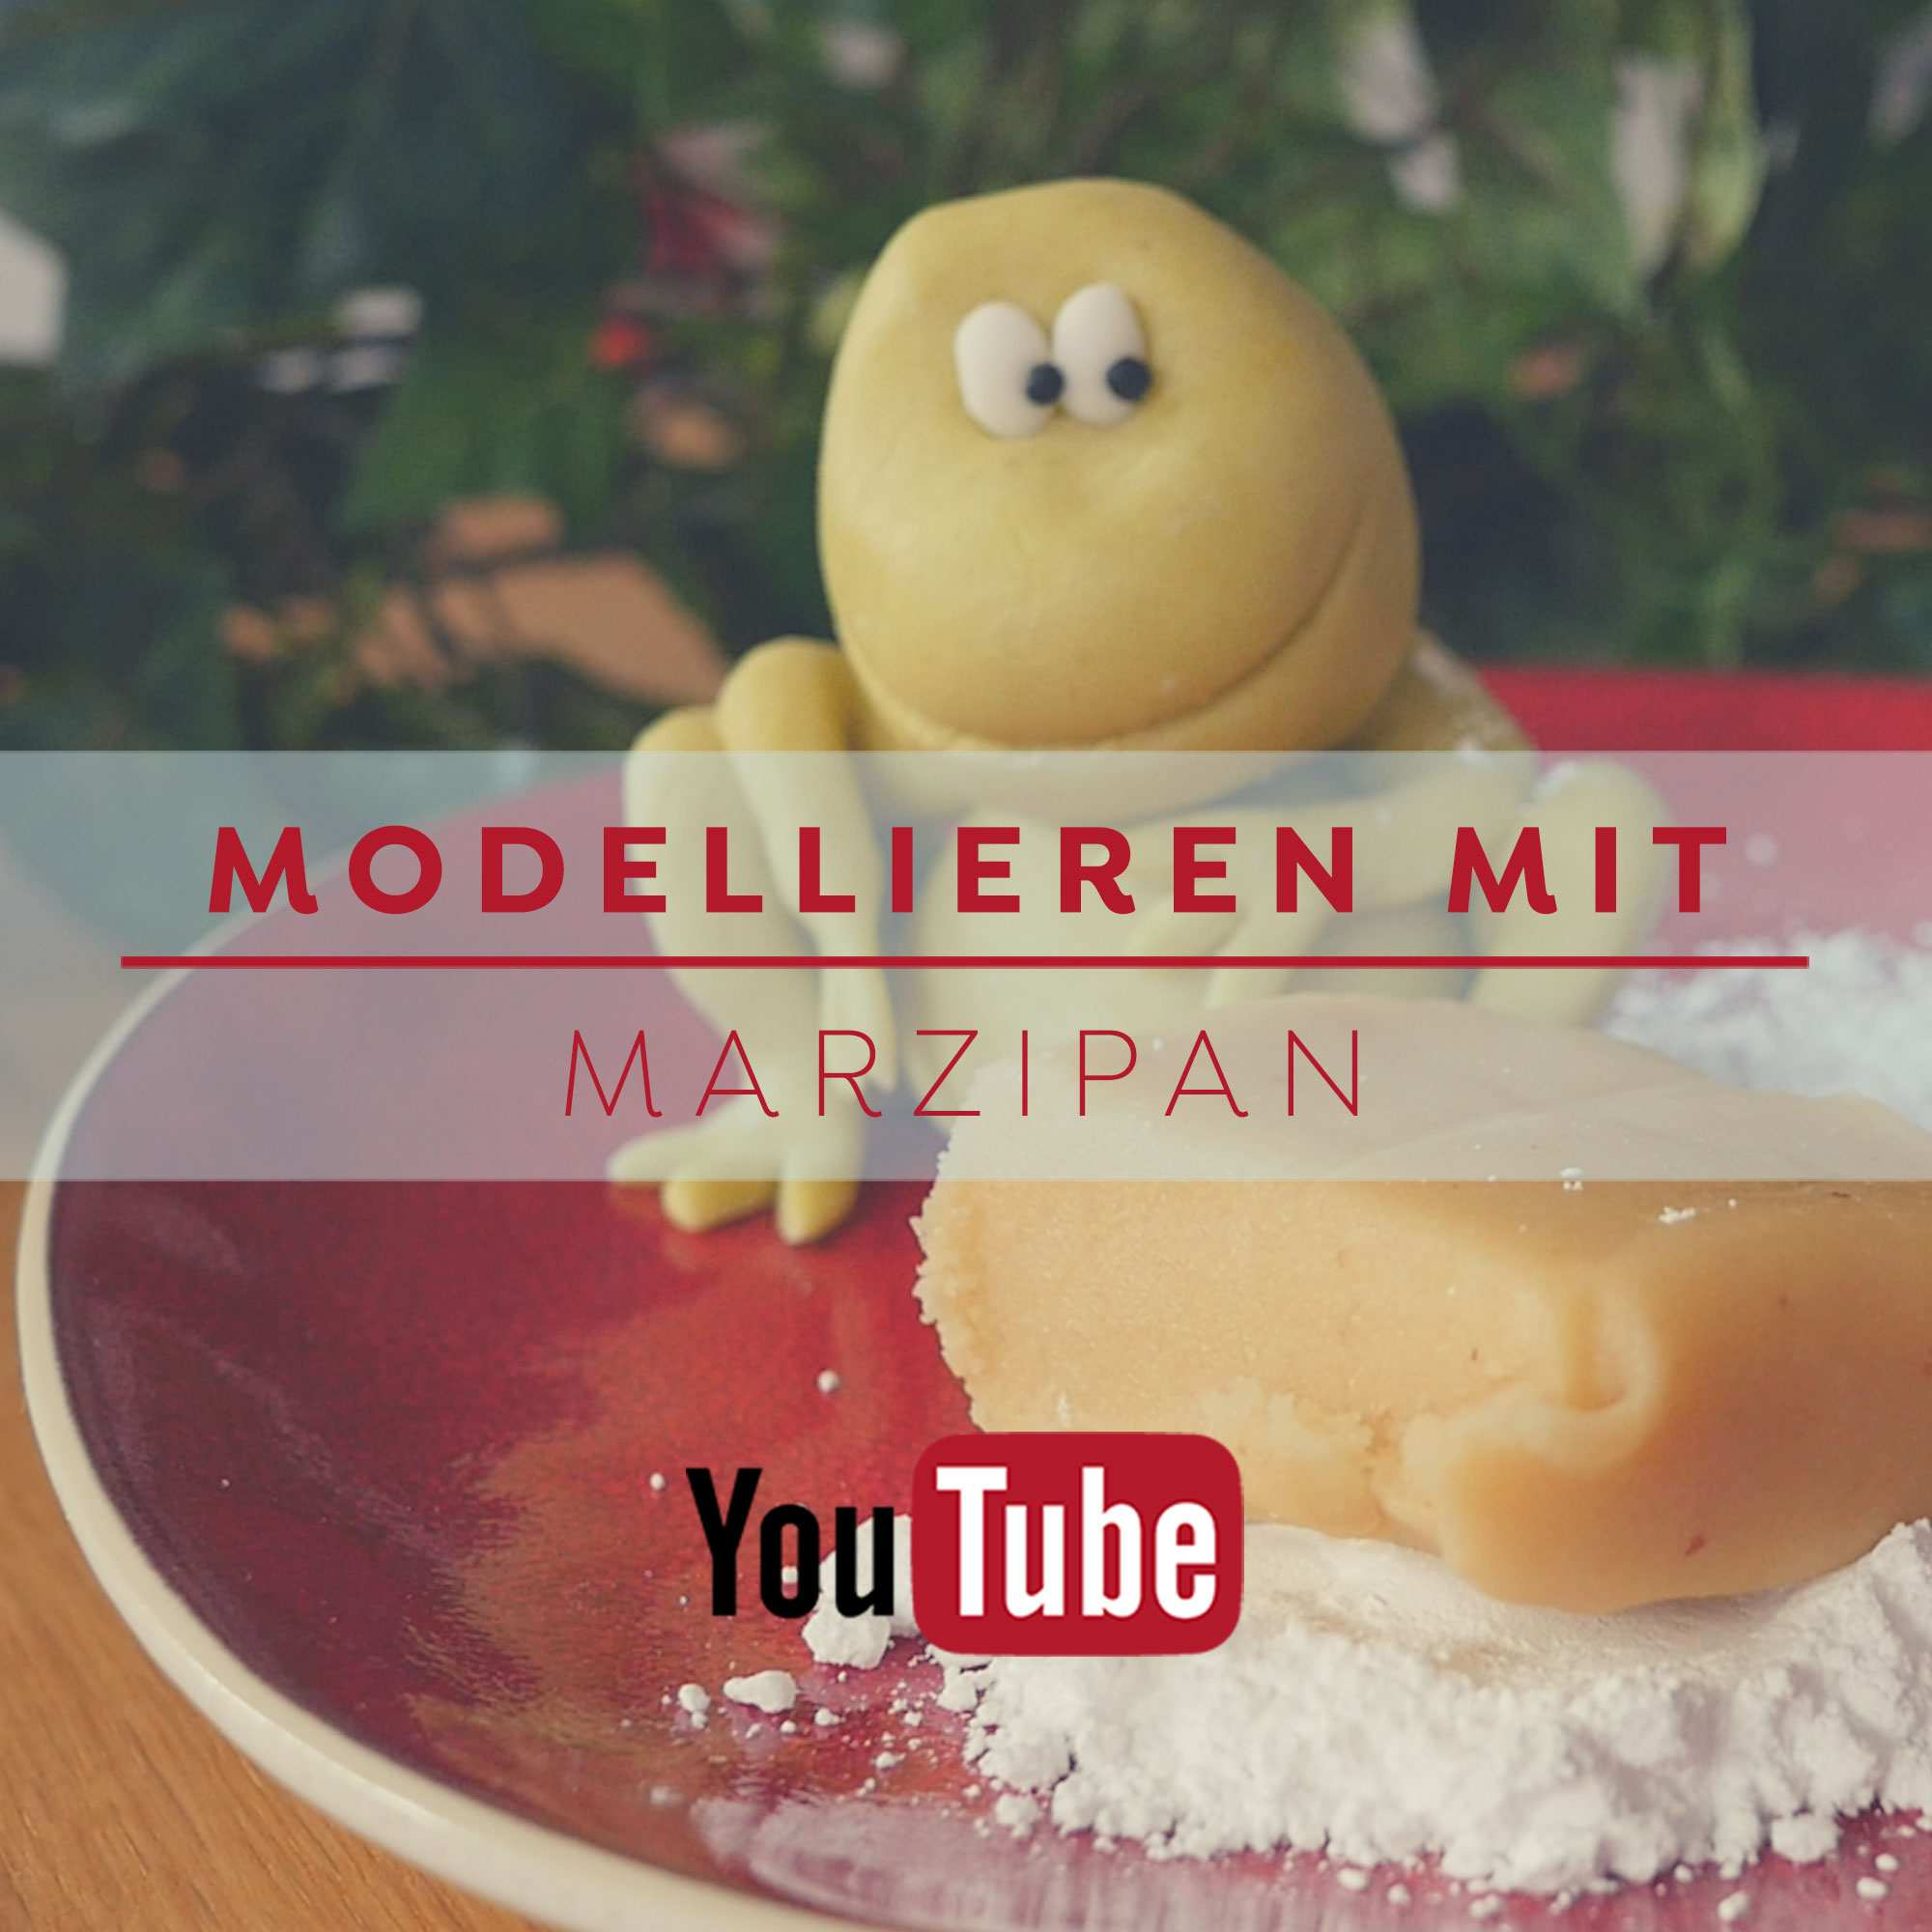 Modellieren Mit Marzipan Betty S Sugar Dreams